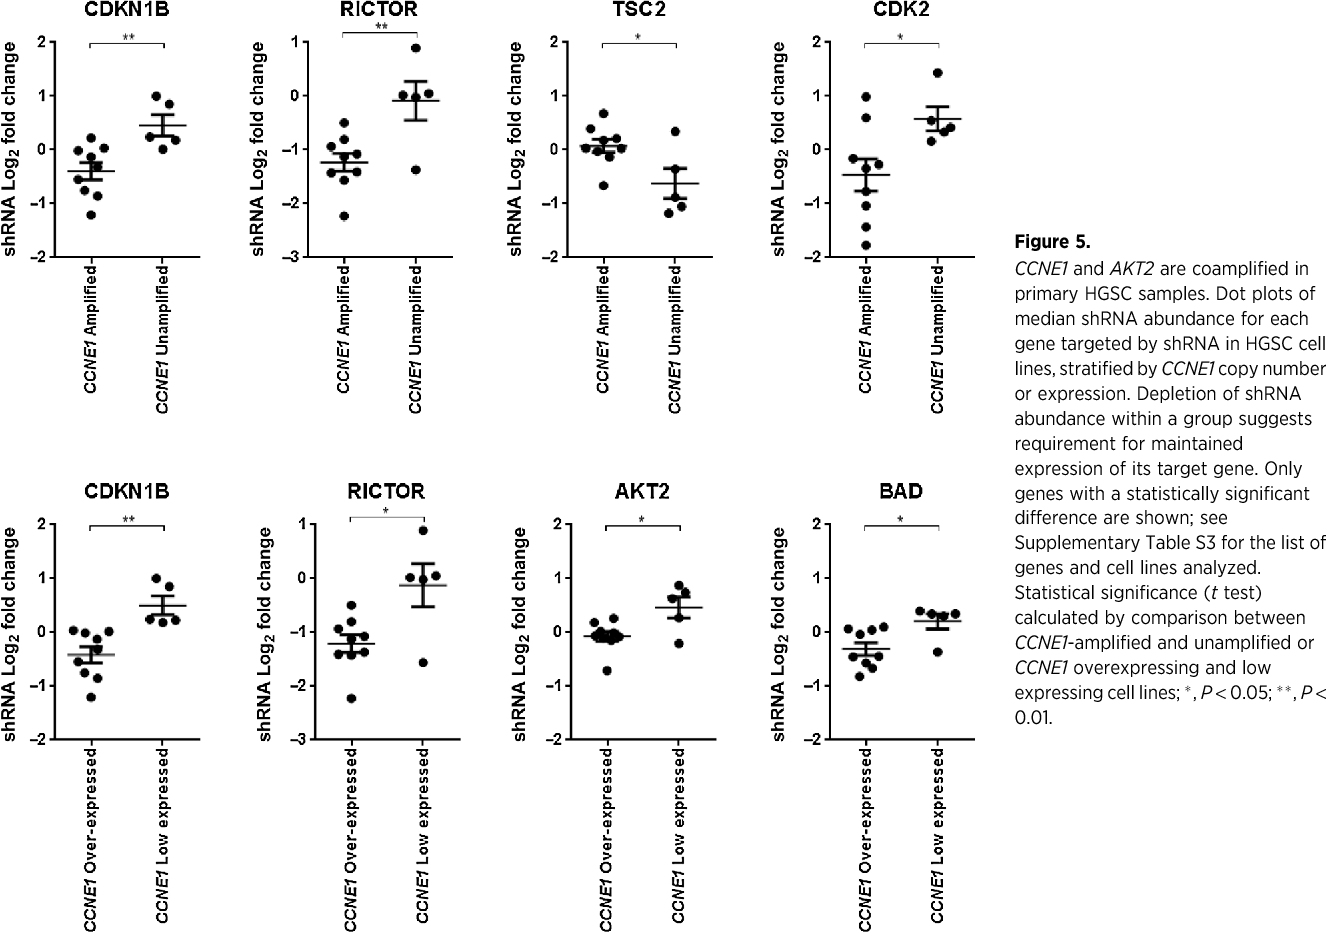 Pdf Selective Targeting Of Cyclin E1 Amplified High Grade Serous Ovarian Cancer By Cyclin Dependent Kinase 2 And Akt Inhibition Semantic Scholar